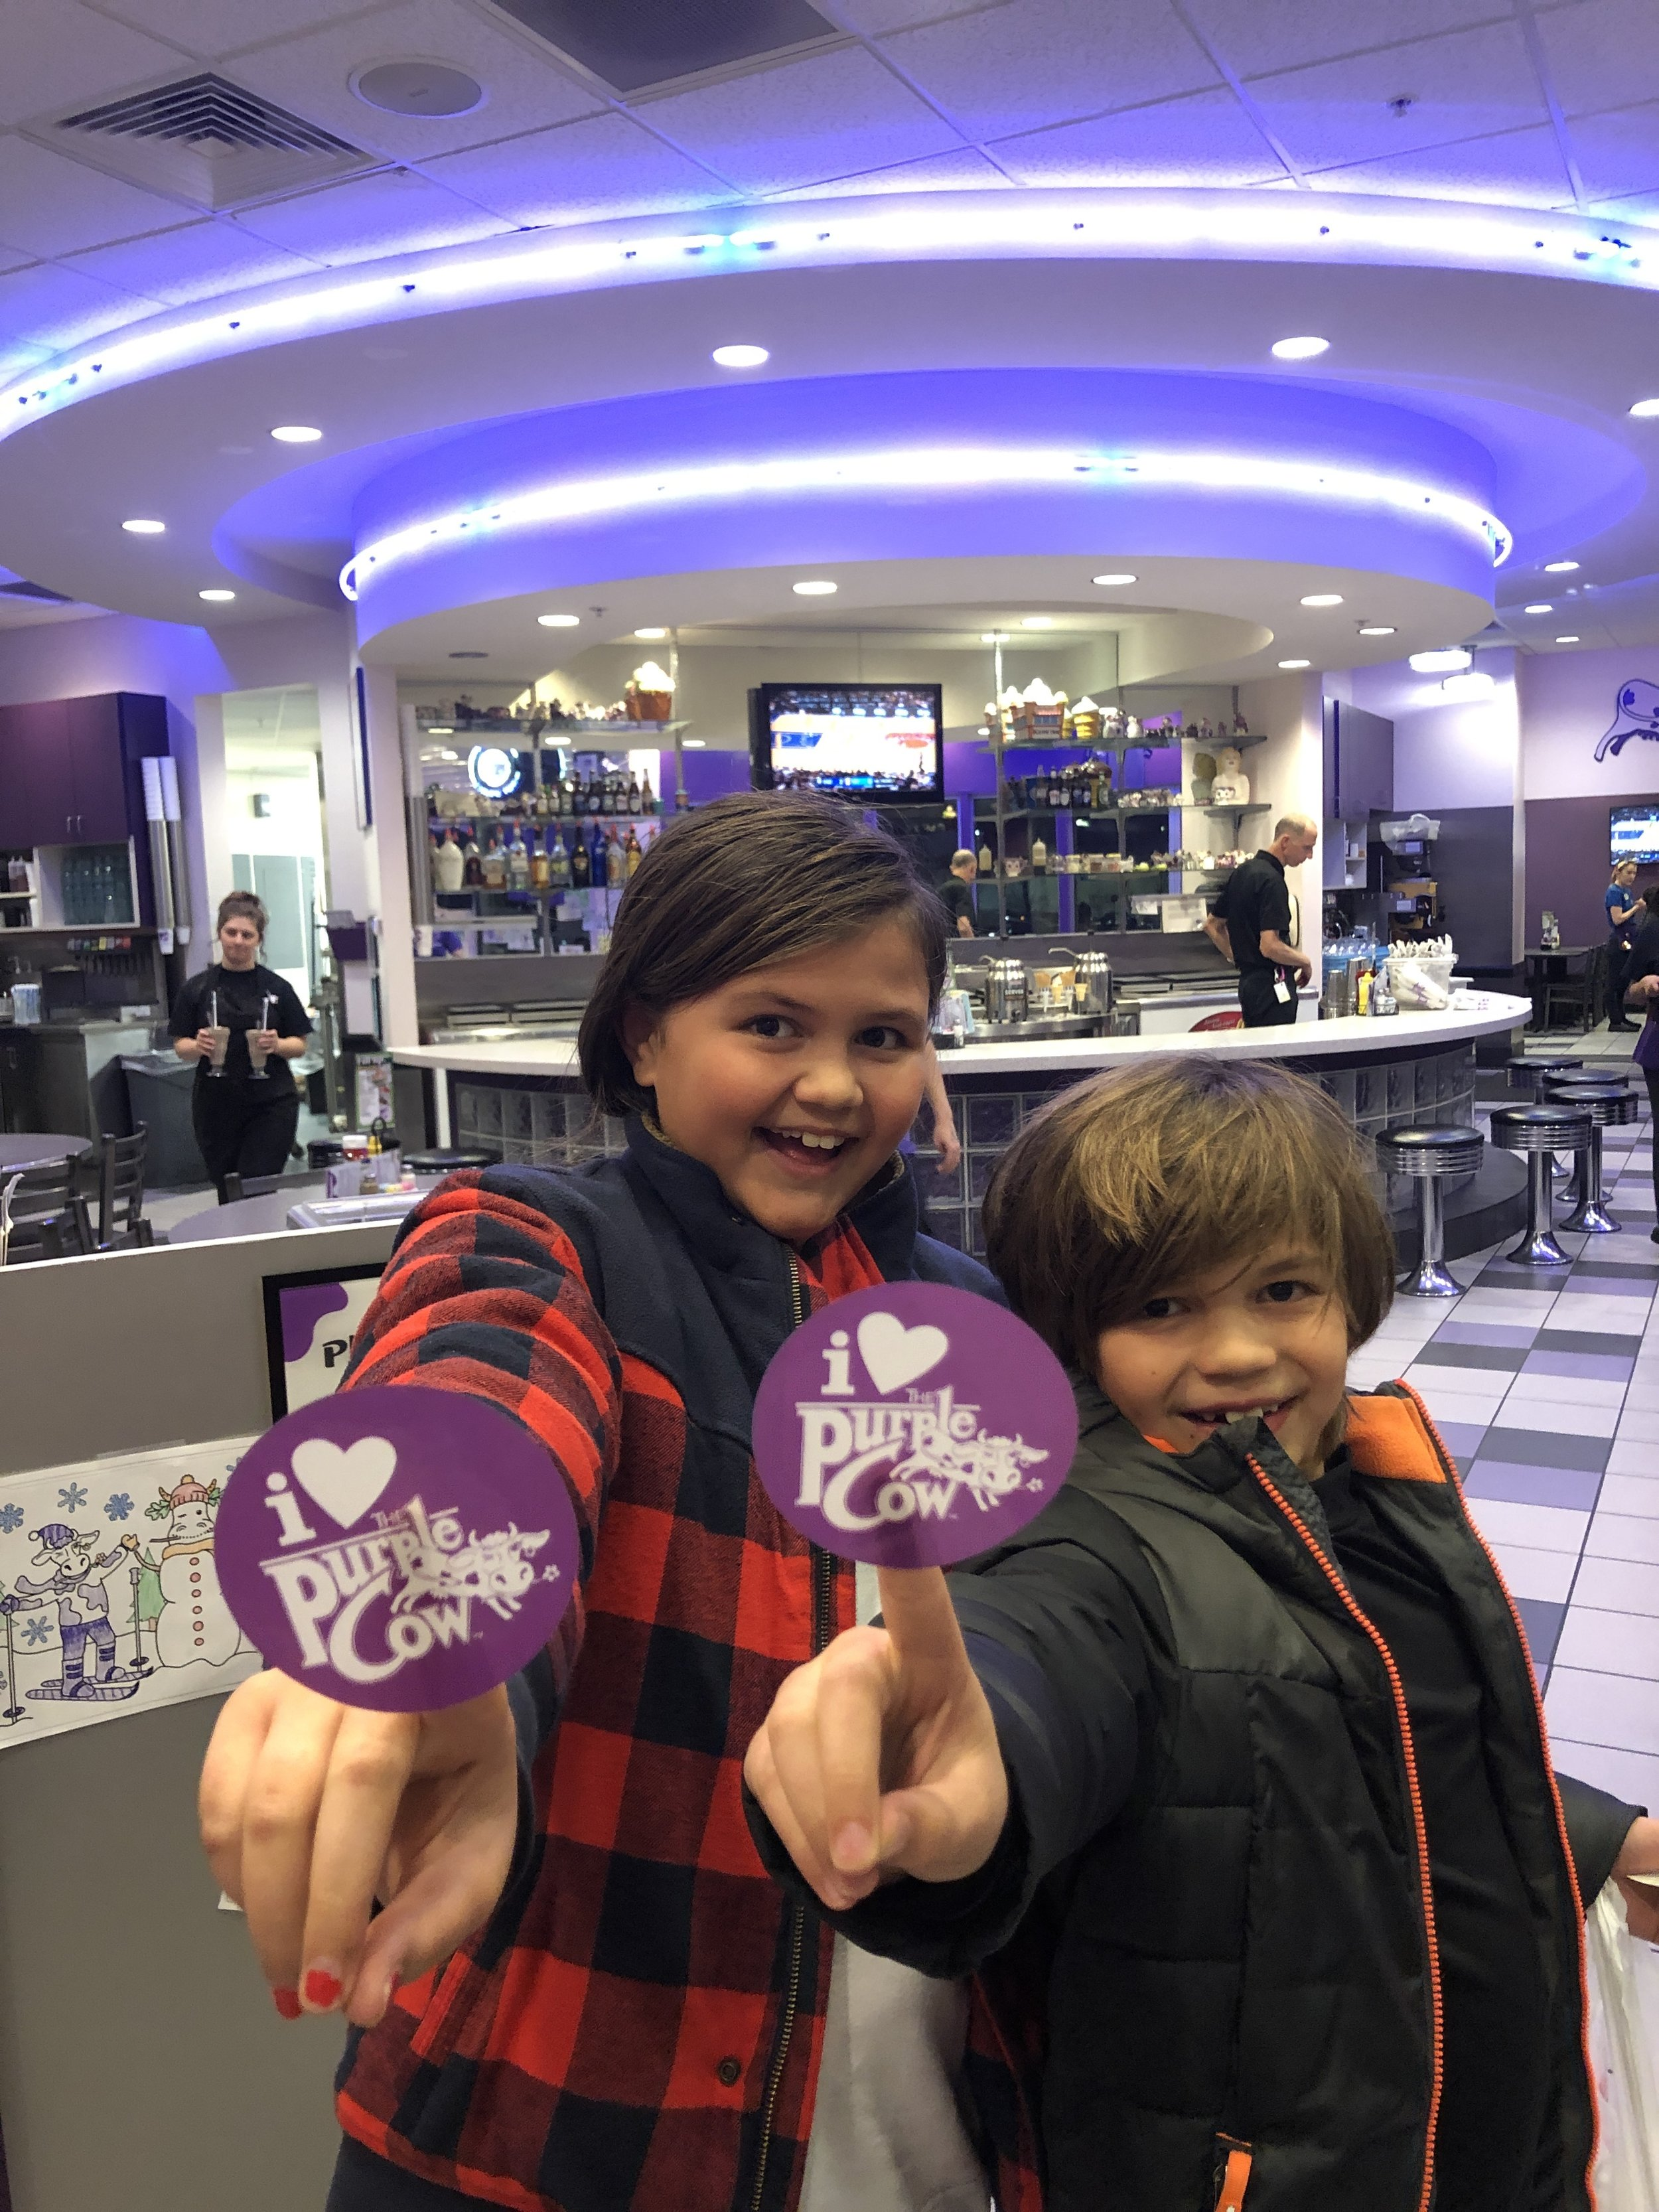 The Purple Cow, Things to do in Hot Springs, Arkansas via Weekend Trips from Nashville